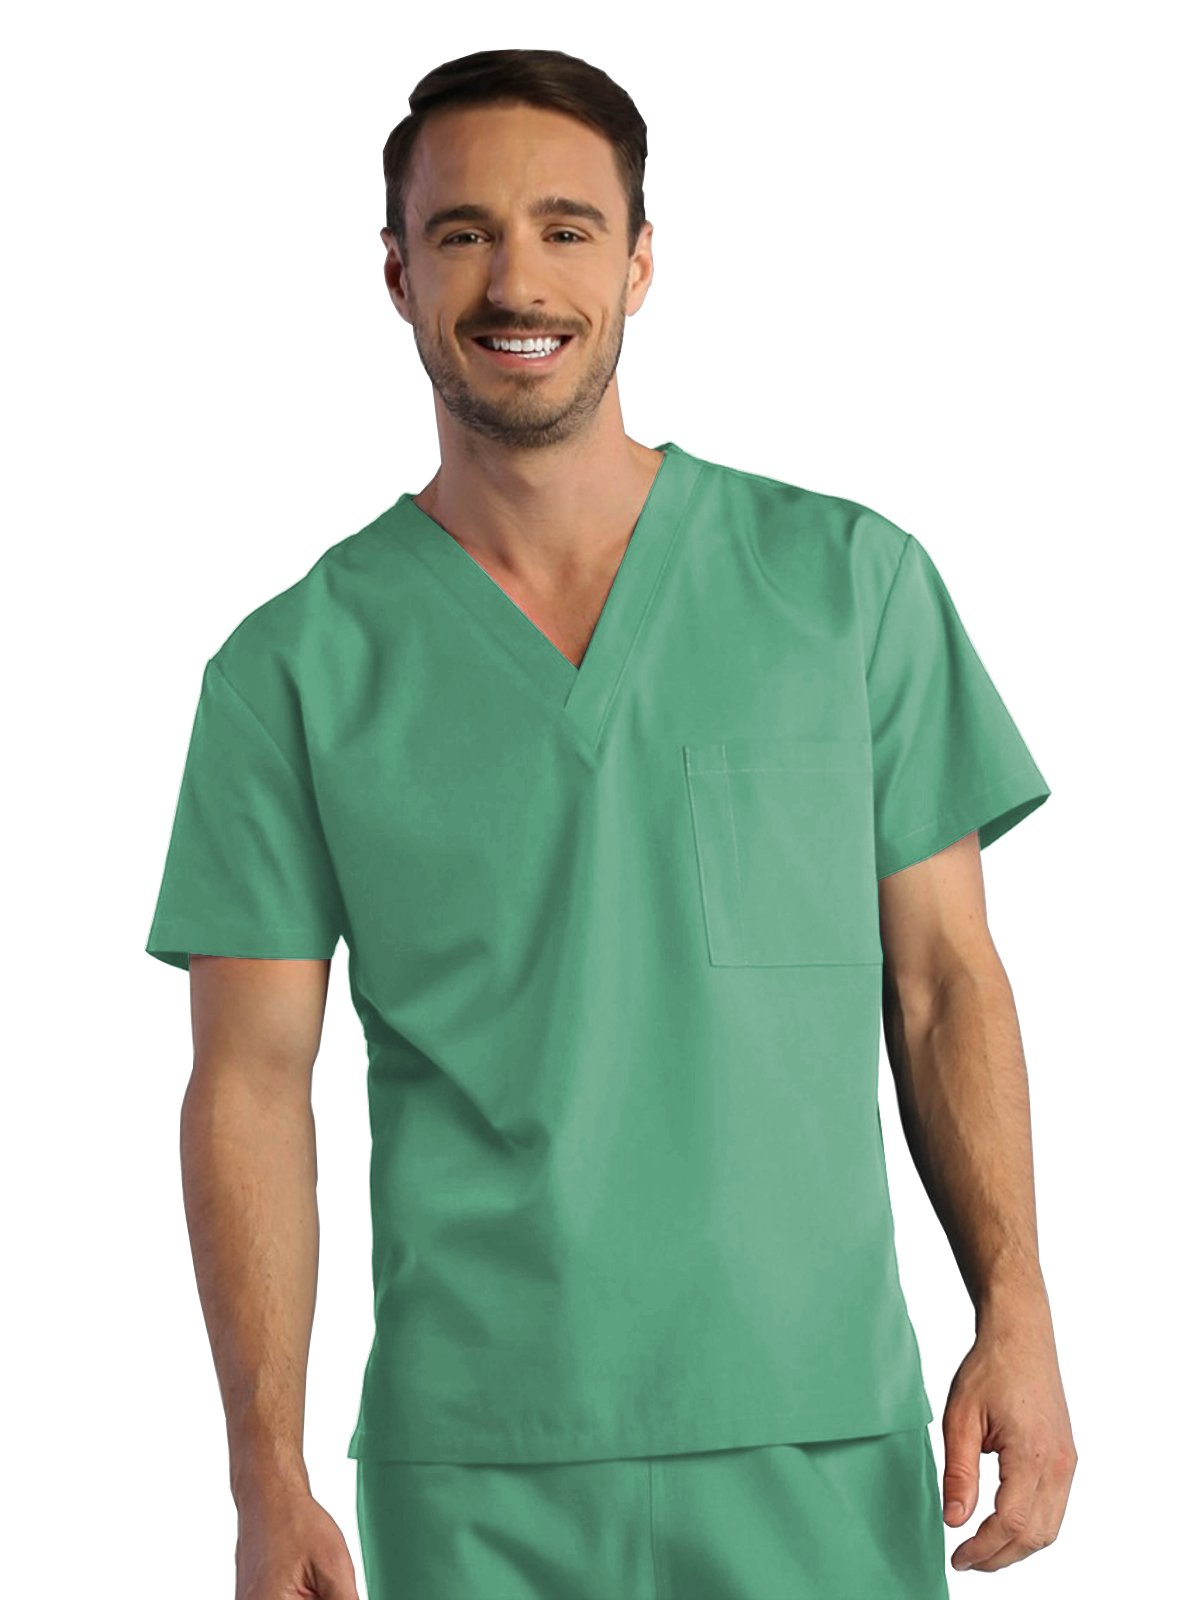 Red Panda Unisex V-Neck Solid Scrub Top Large Sea Green